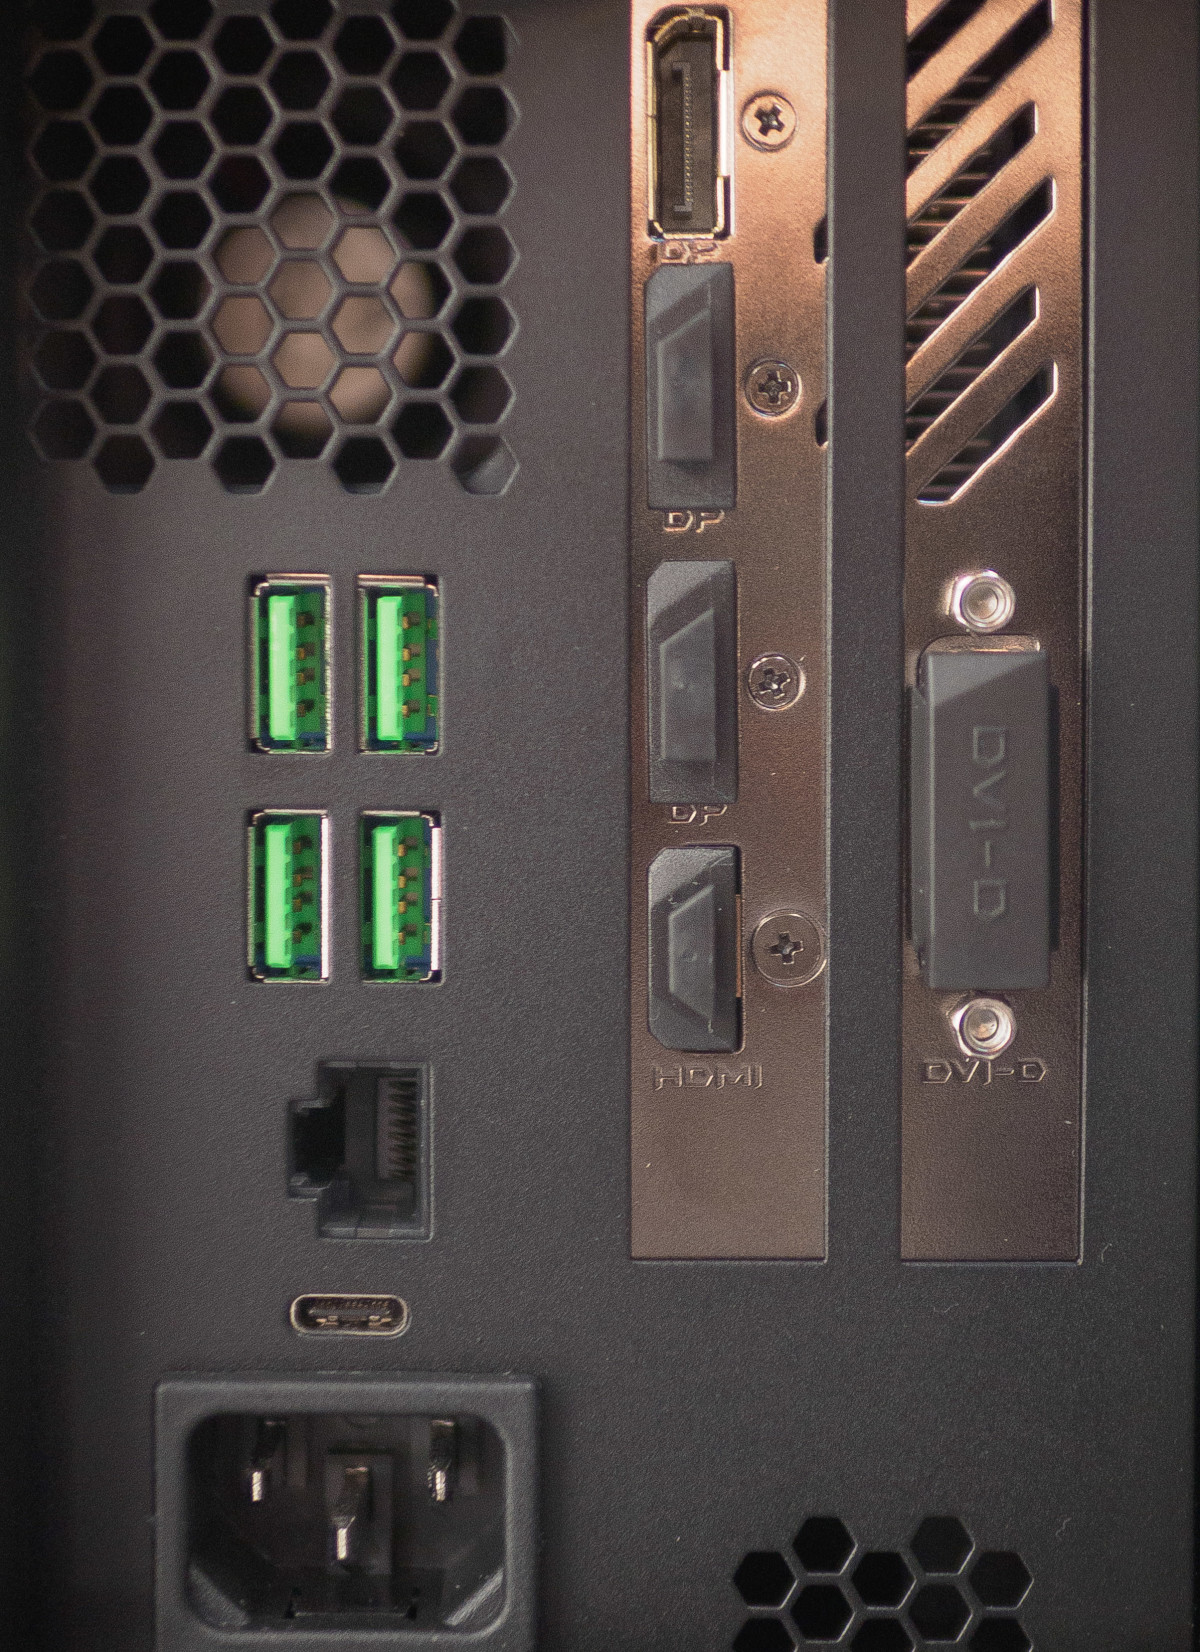 The back of the Razer Core graphics dock